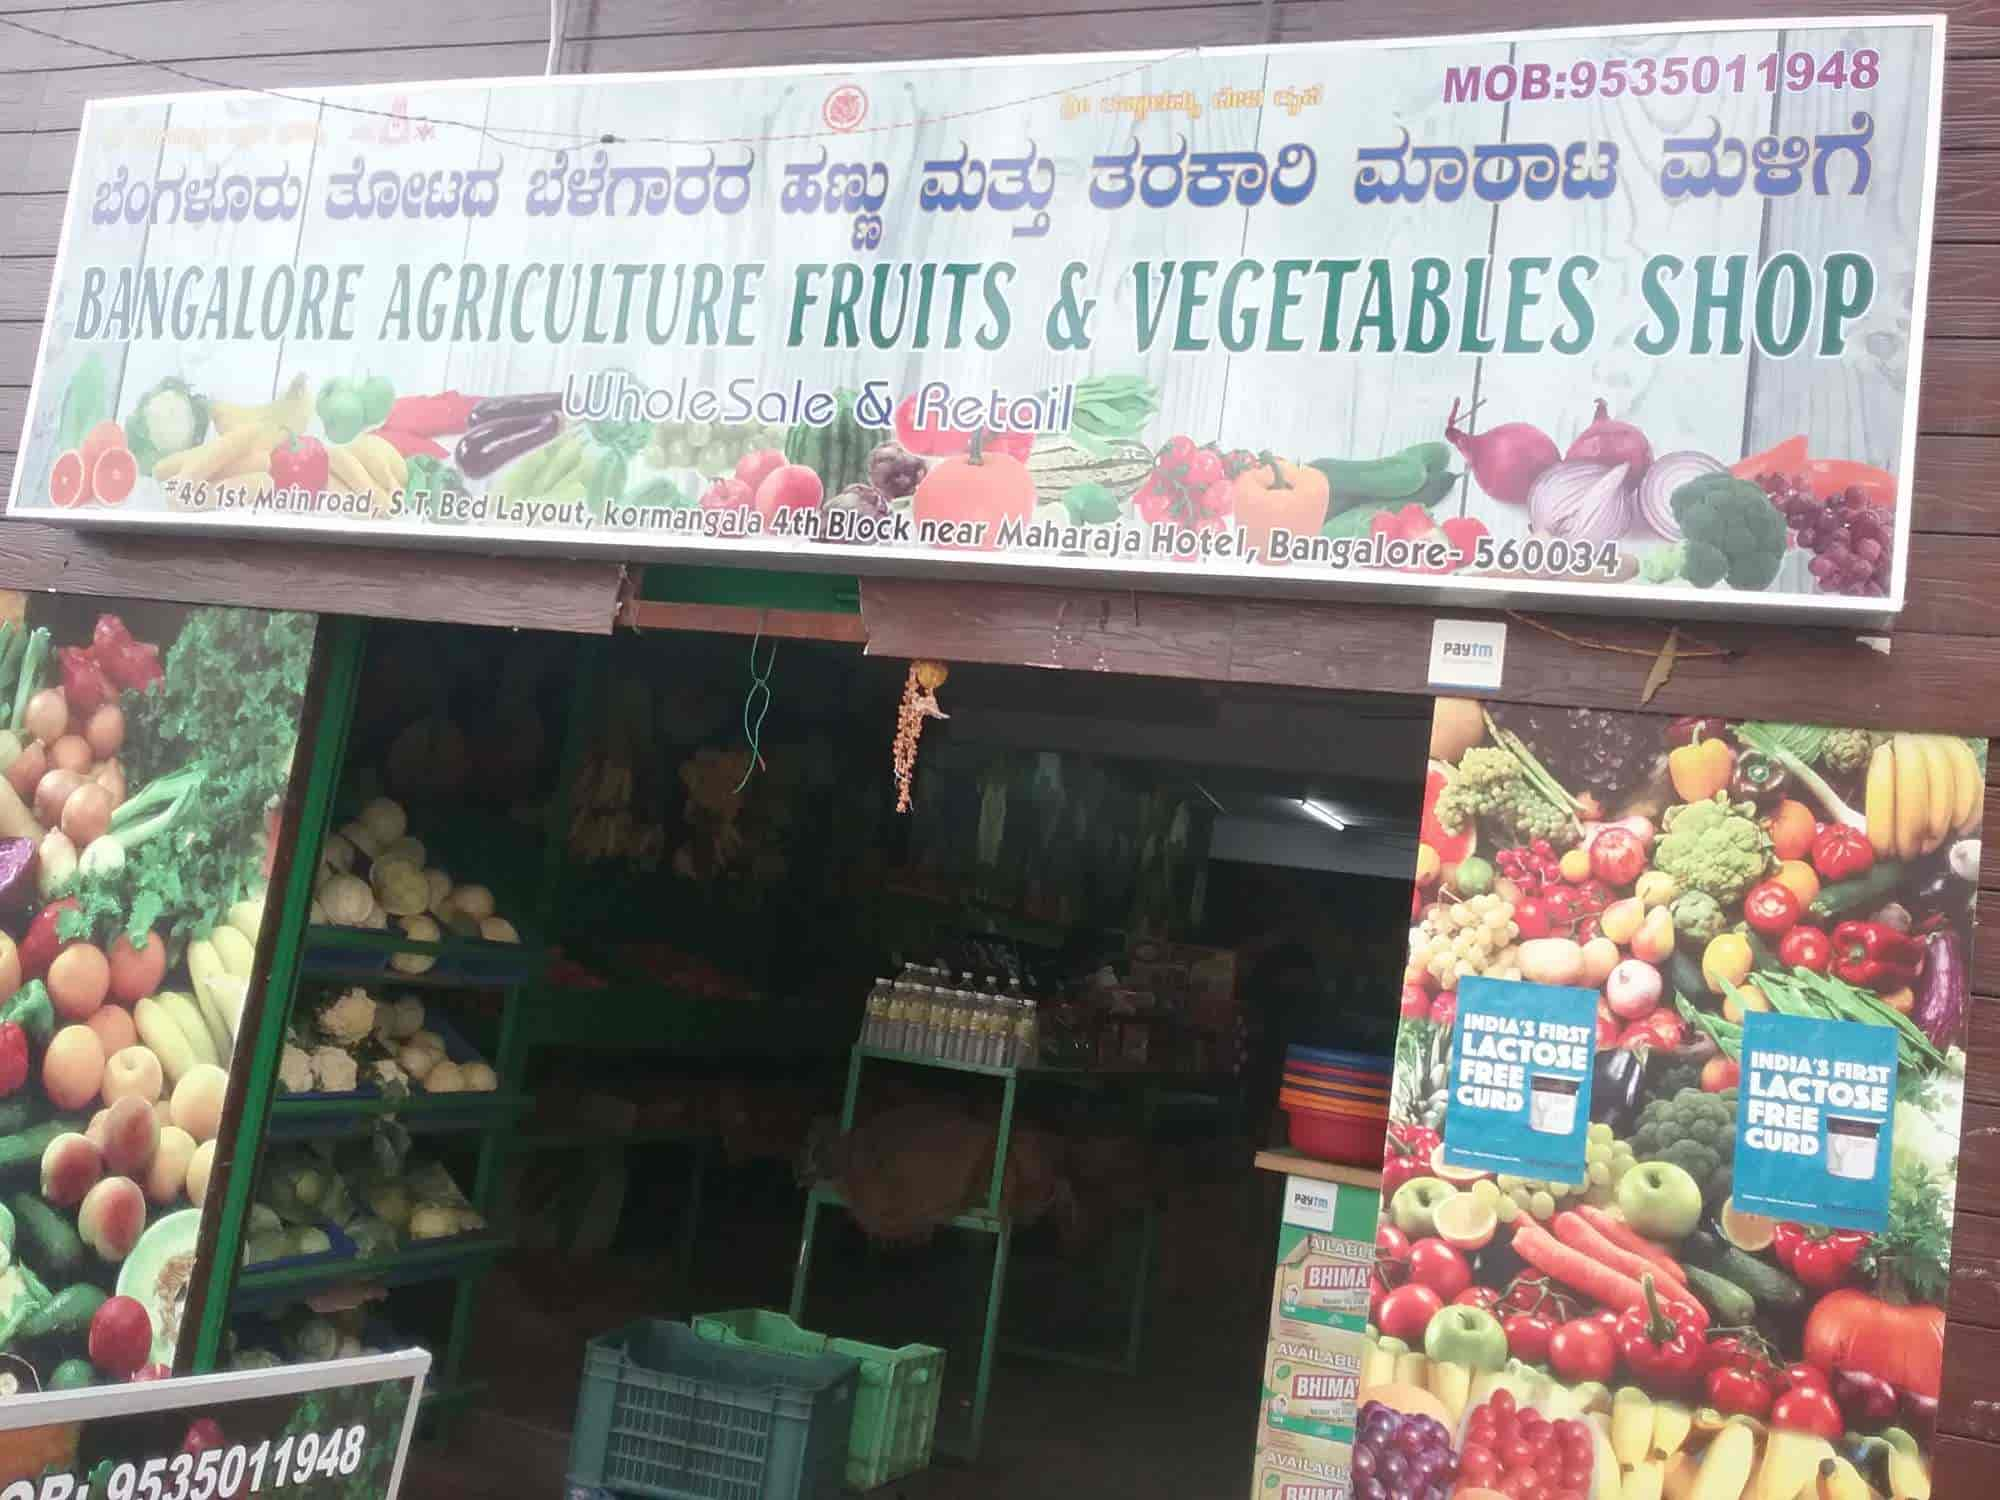 Bangalore Agriculture Fruits And Vegetables Shop